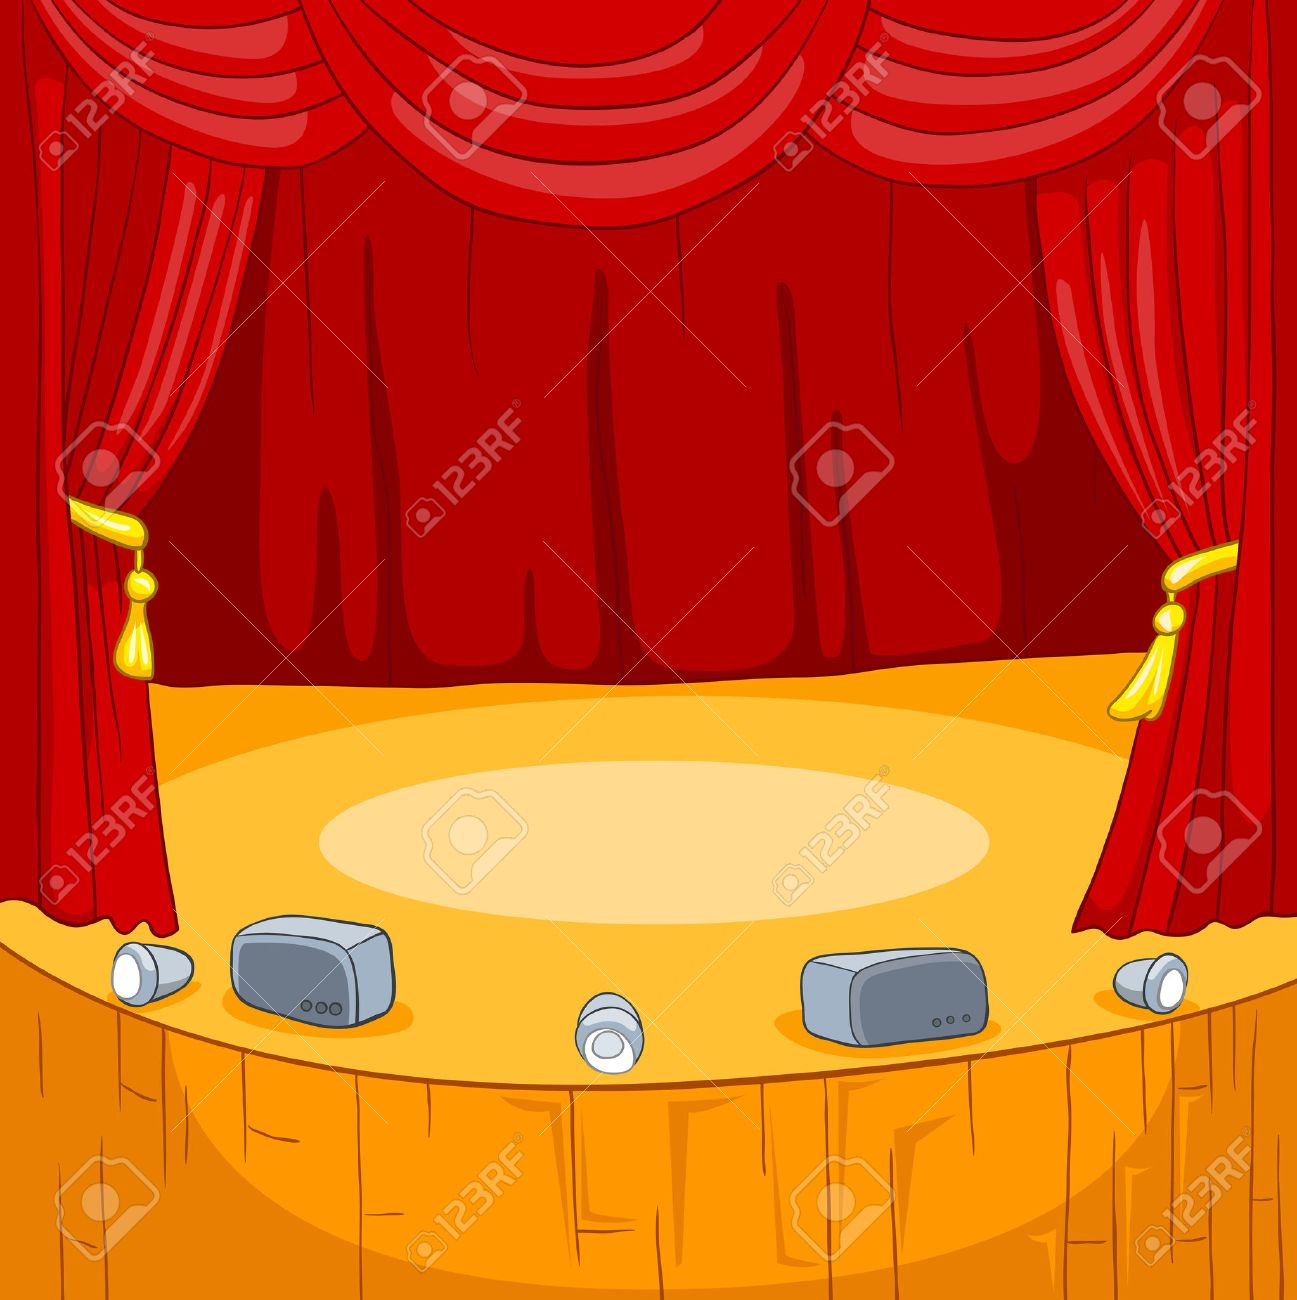 Theater Stage With Velvet Curtains Vector Cartoon Background Stock Photo